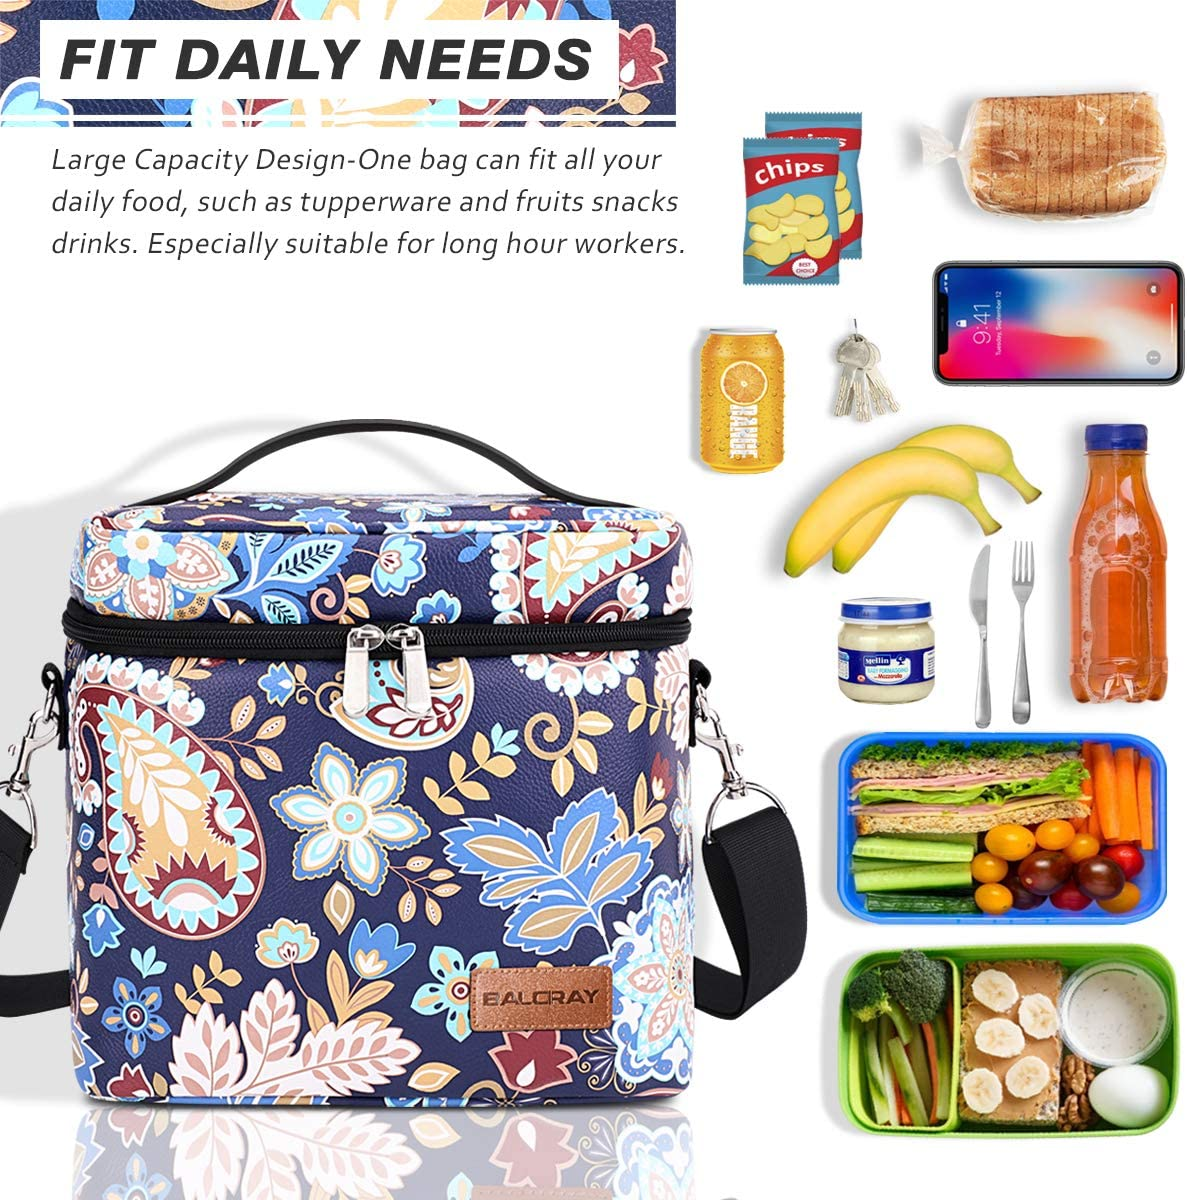 BALORAY Lunch Bags for Women Waterproof PU Leather Multifunction Insulated Cooler Bag with Adjustable Shoulder Strap Tote Lunch Box Bags for Outdoor Picnic Hiking Work Women